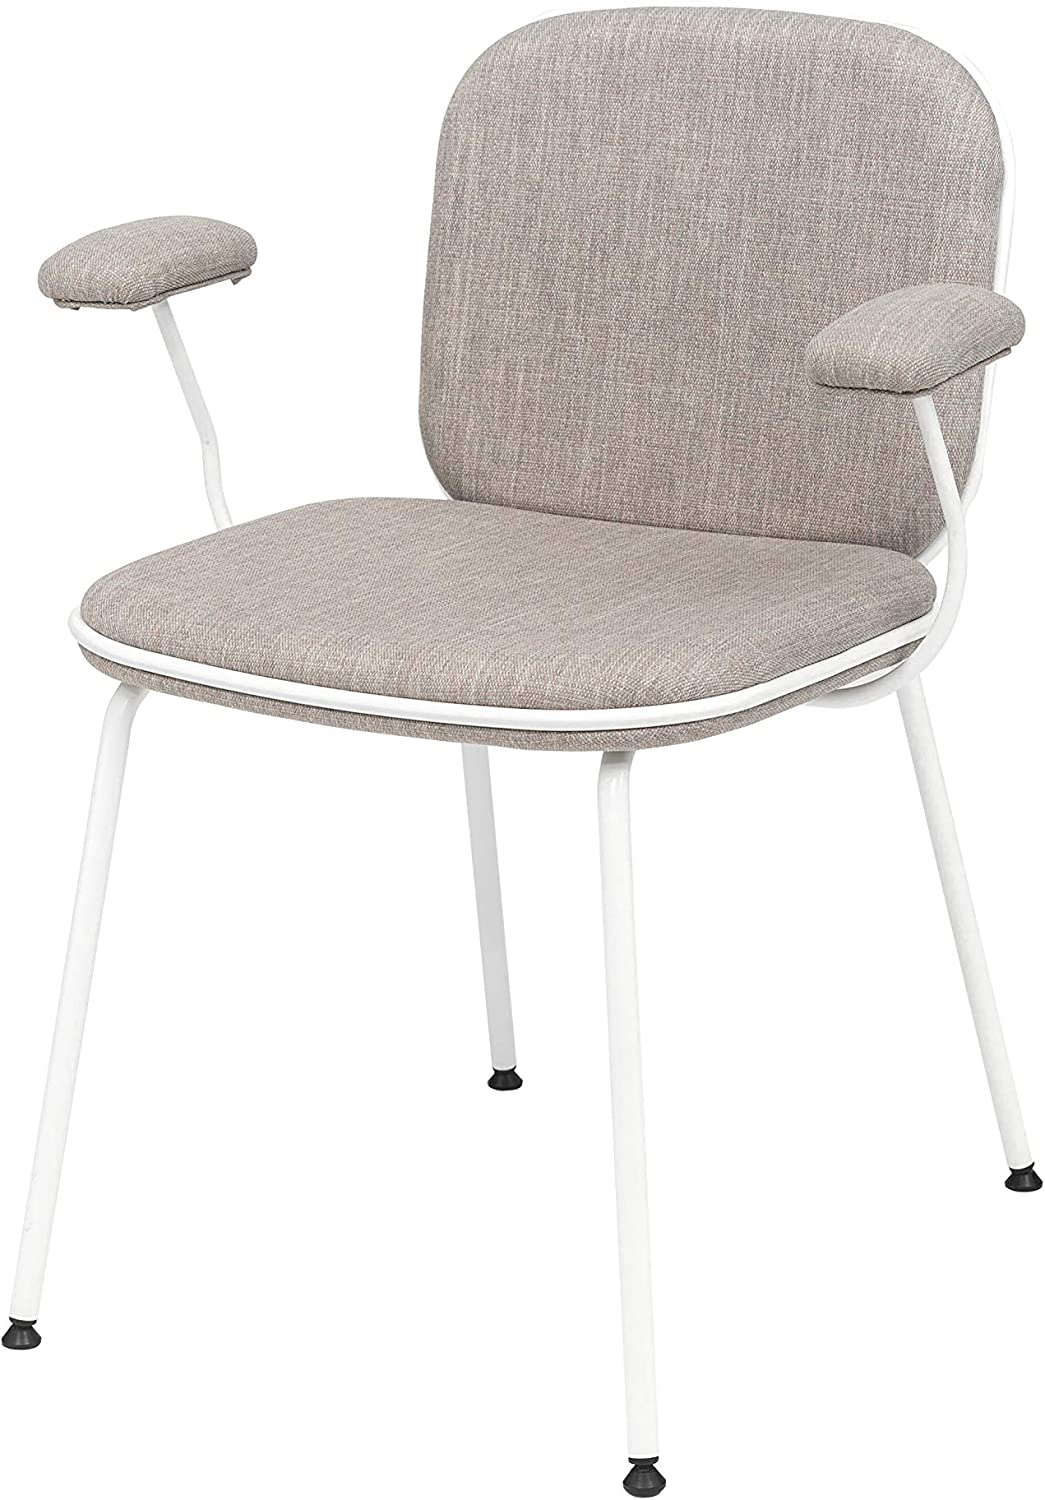 OCHS Toa Armchair with Fabric Upholstered Soft Armrest and Metal Frame for Lounge Office Living and Dining Room